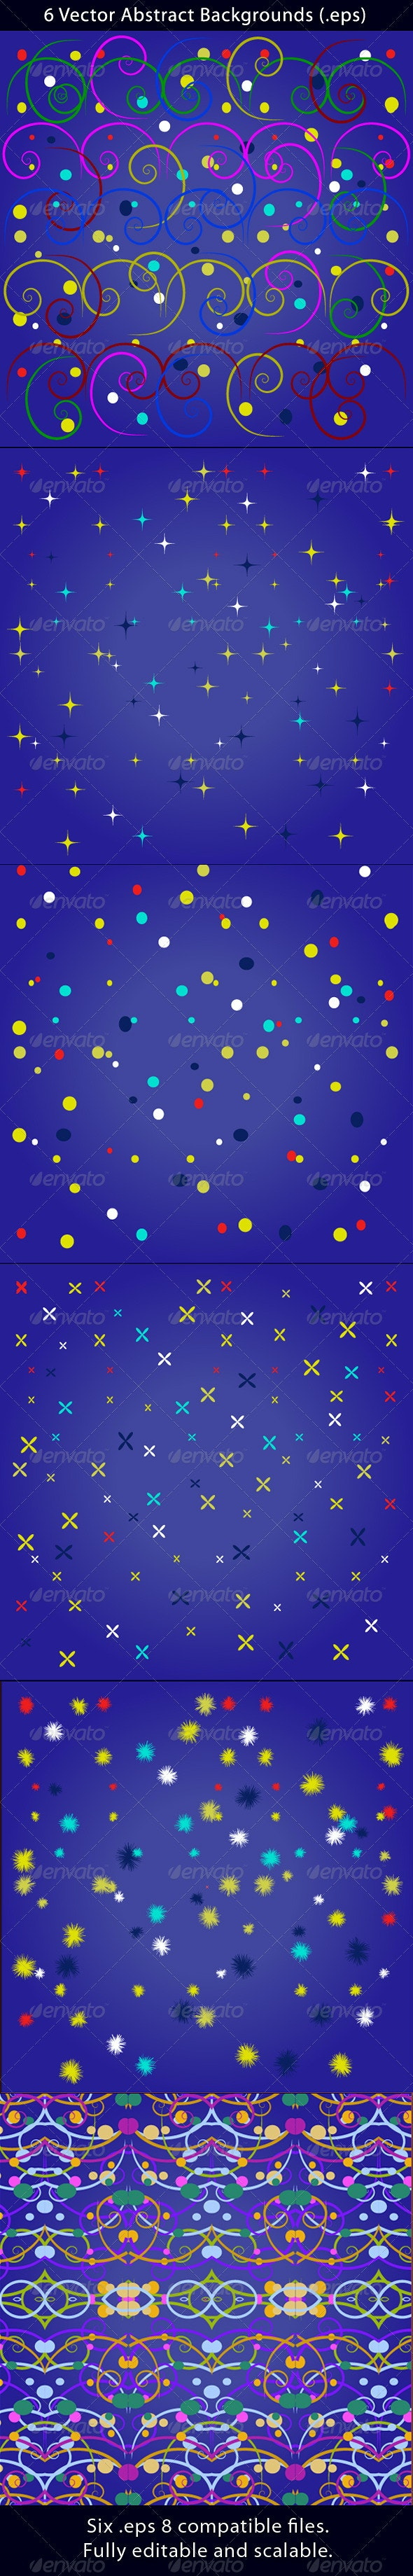 6 Vector Abstract Backgrounds - Backgrounds Decorative